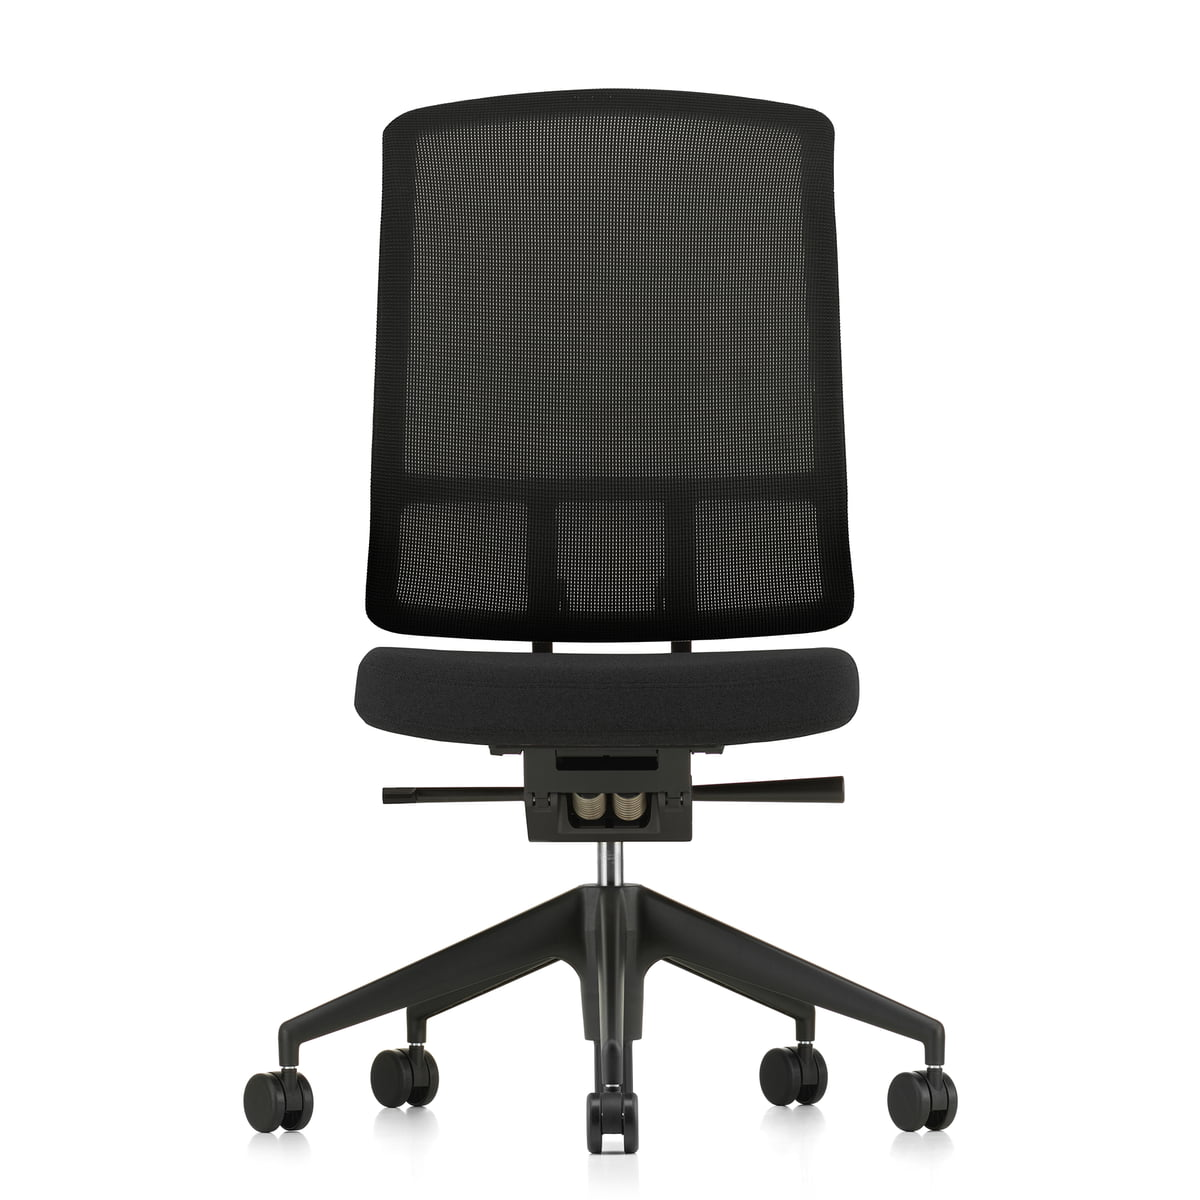 vitra office chair golden technologies lift reviews am by connox shop